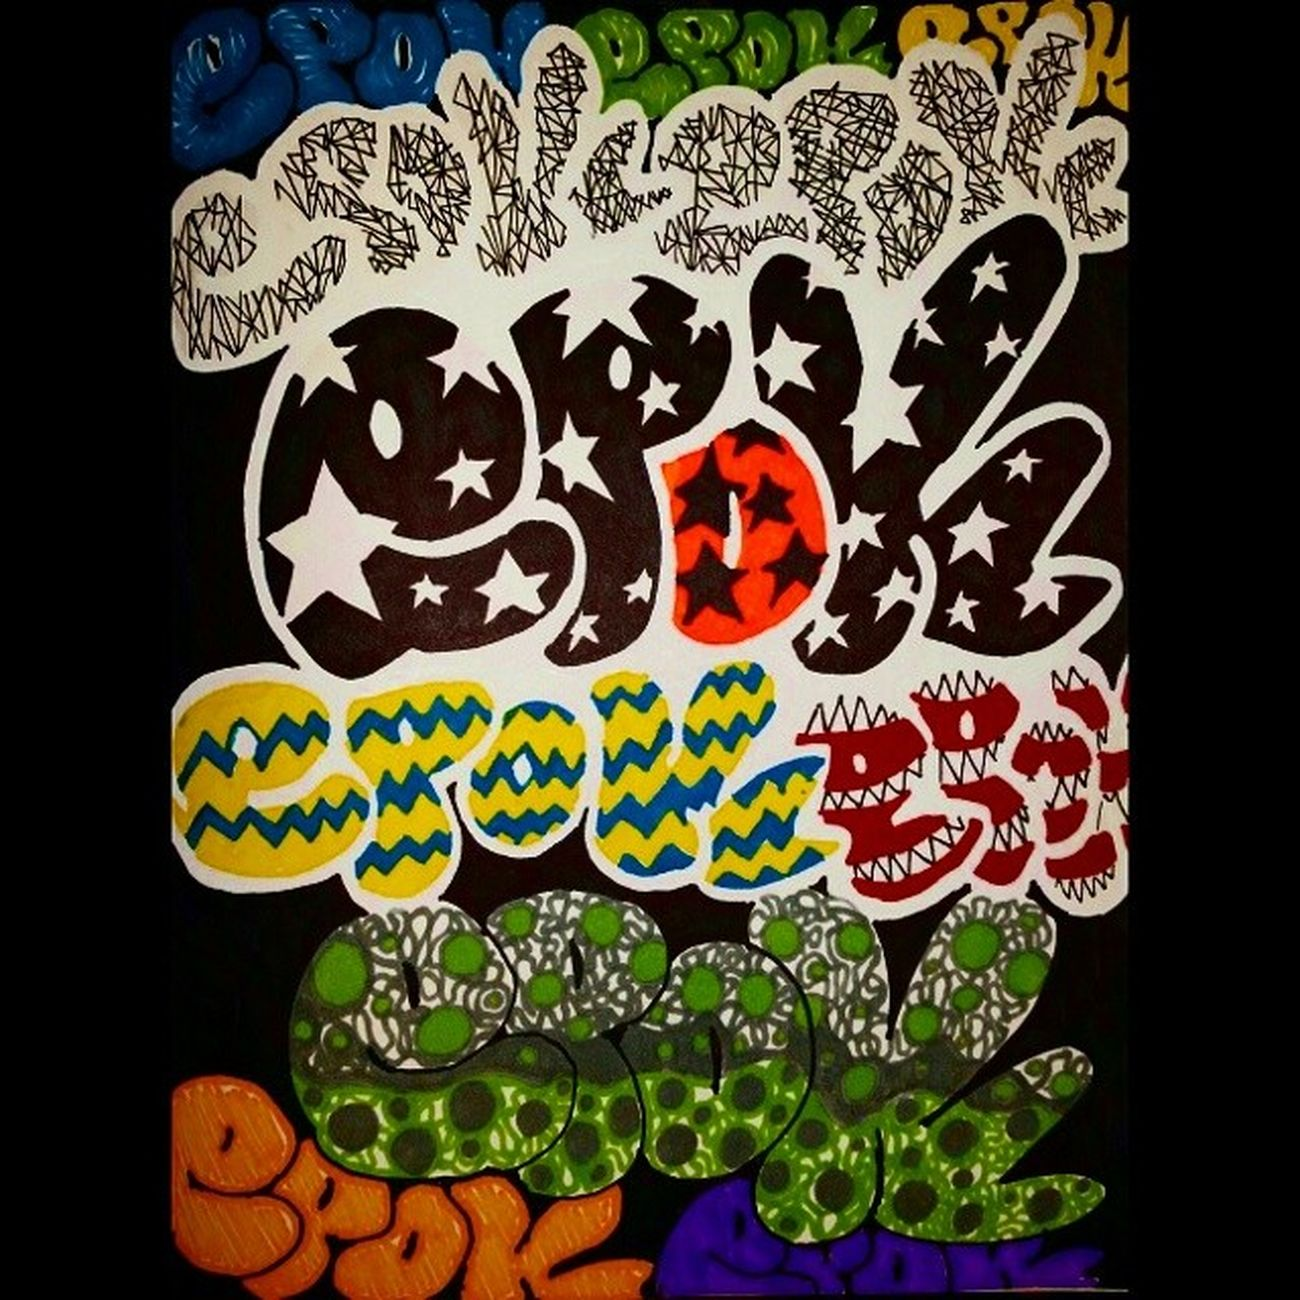 EPOK! Freestyle Taggin with random color and patterns with a little help from wifey Mrs J.Stylist Epok84 Taggin Art BLACKBOOk sharpie abstract BiC PermanentMarker colors patterns random